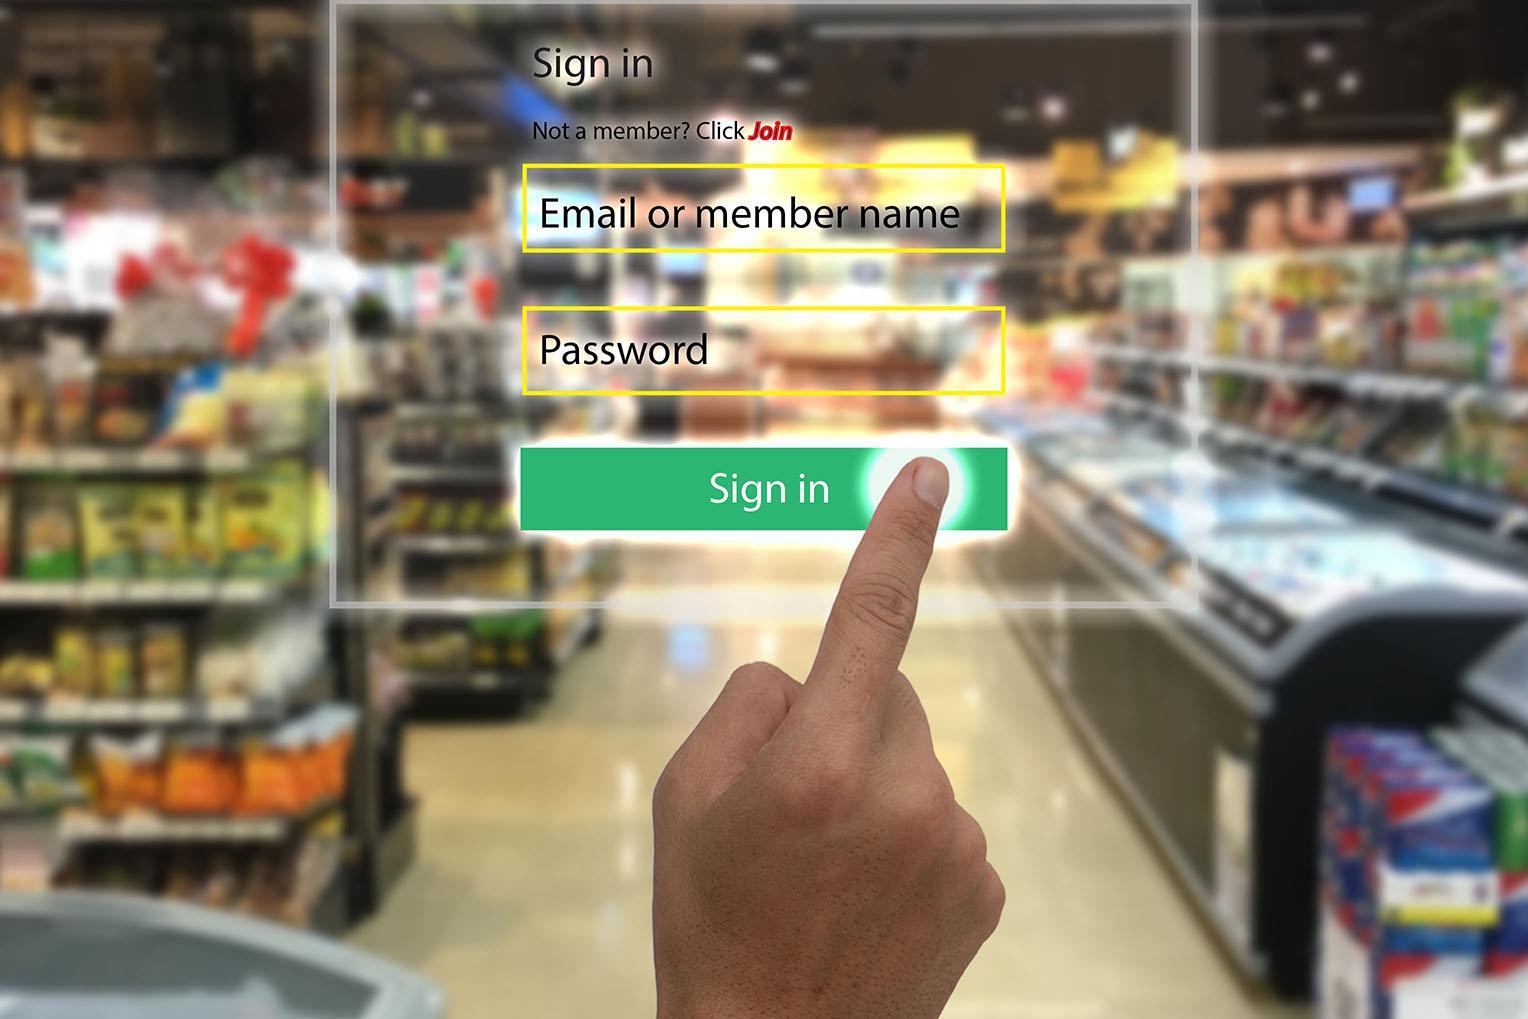 The future of retail: digitising the store   Retail Voice   Retail Week